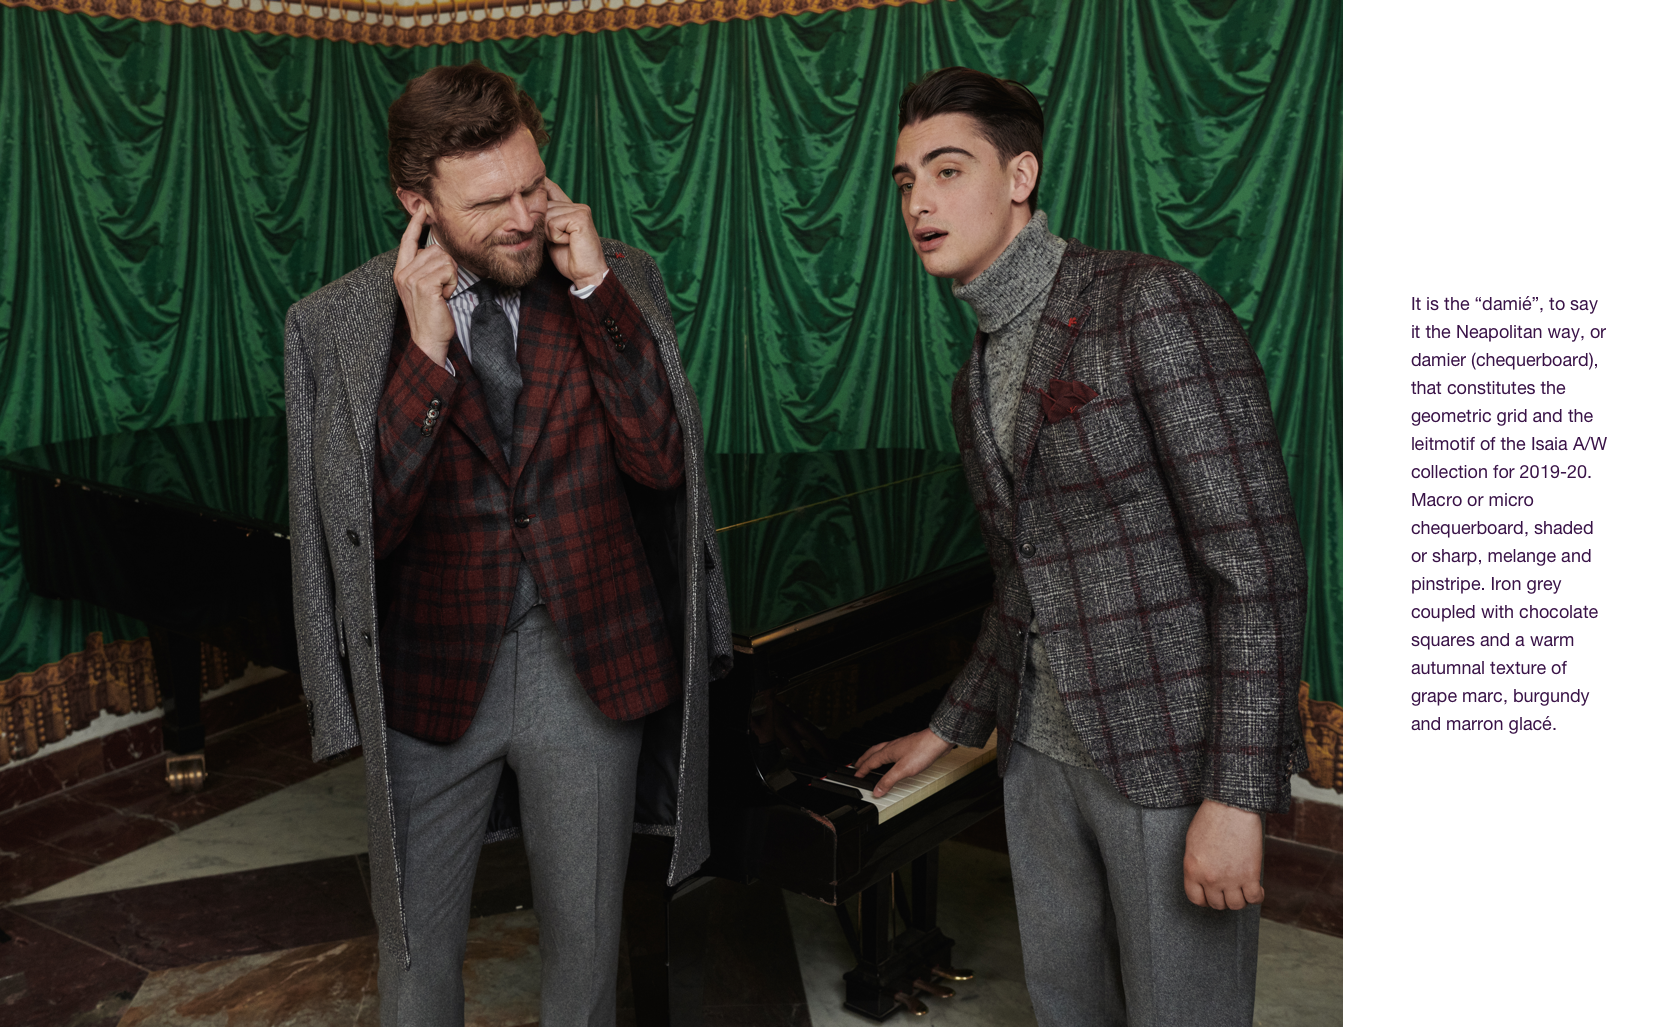 "It is the ""damié"", to say it the Neapolitan way, or damier (chequerboard), that constitutes the geometric grid and the leitmotif of the Isaia A/W collection for 2019-20. Macro or micro chequerboard, shaded or sharp, melange and pinstripe. Iron grey coupled with chocolate squares and a warm autumnal texture of grape marc, burgundy and marron glacé."